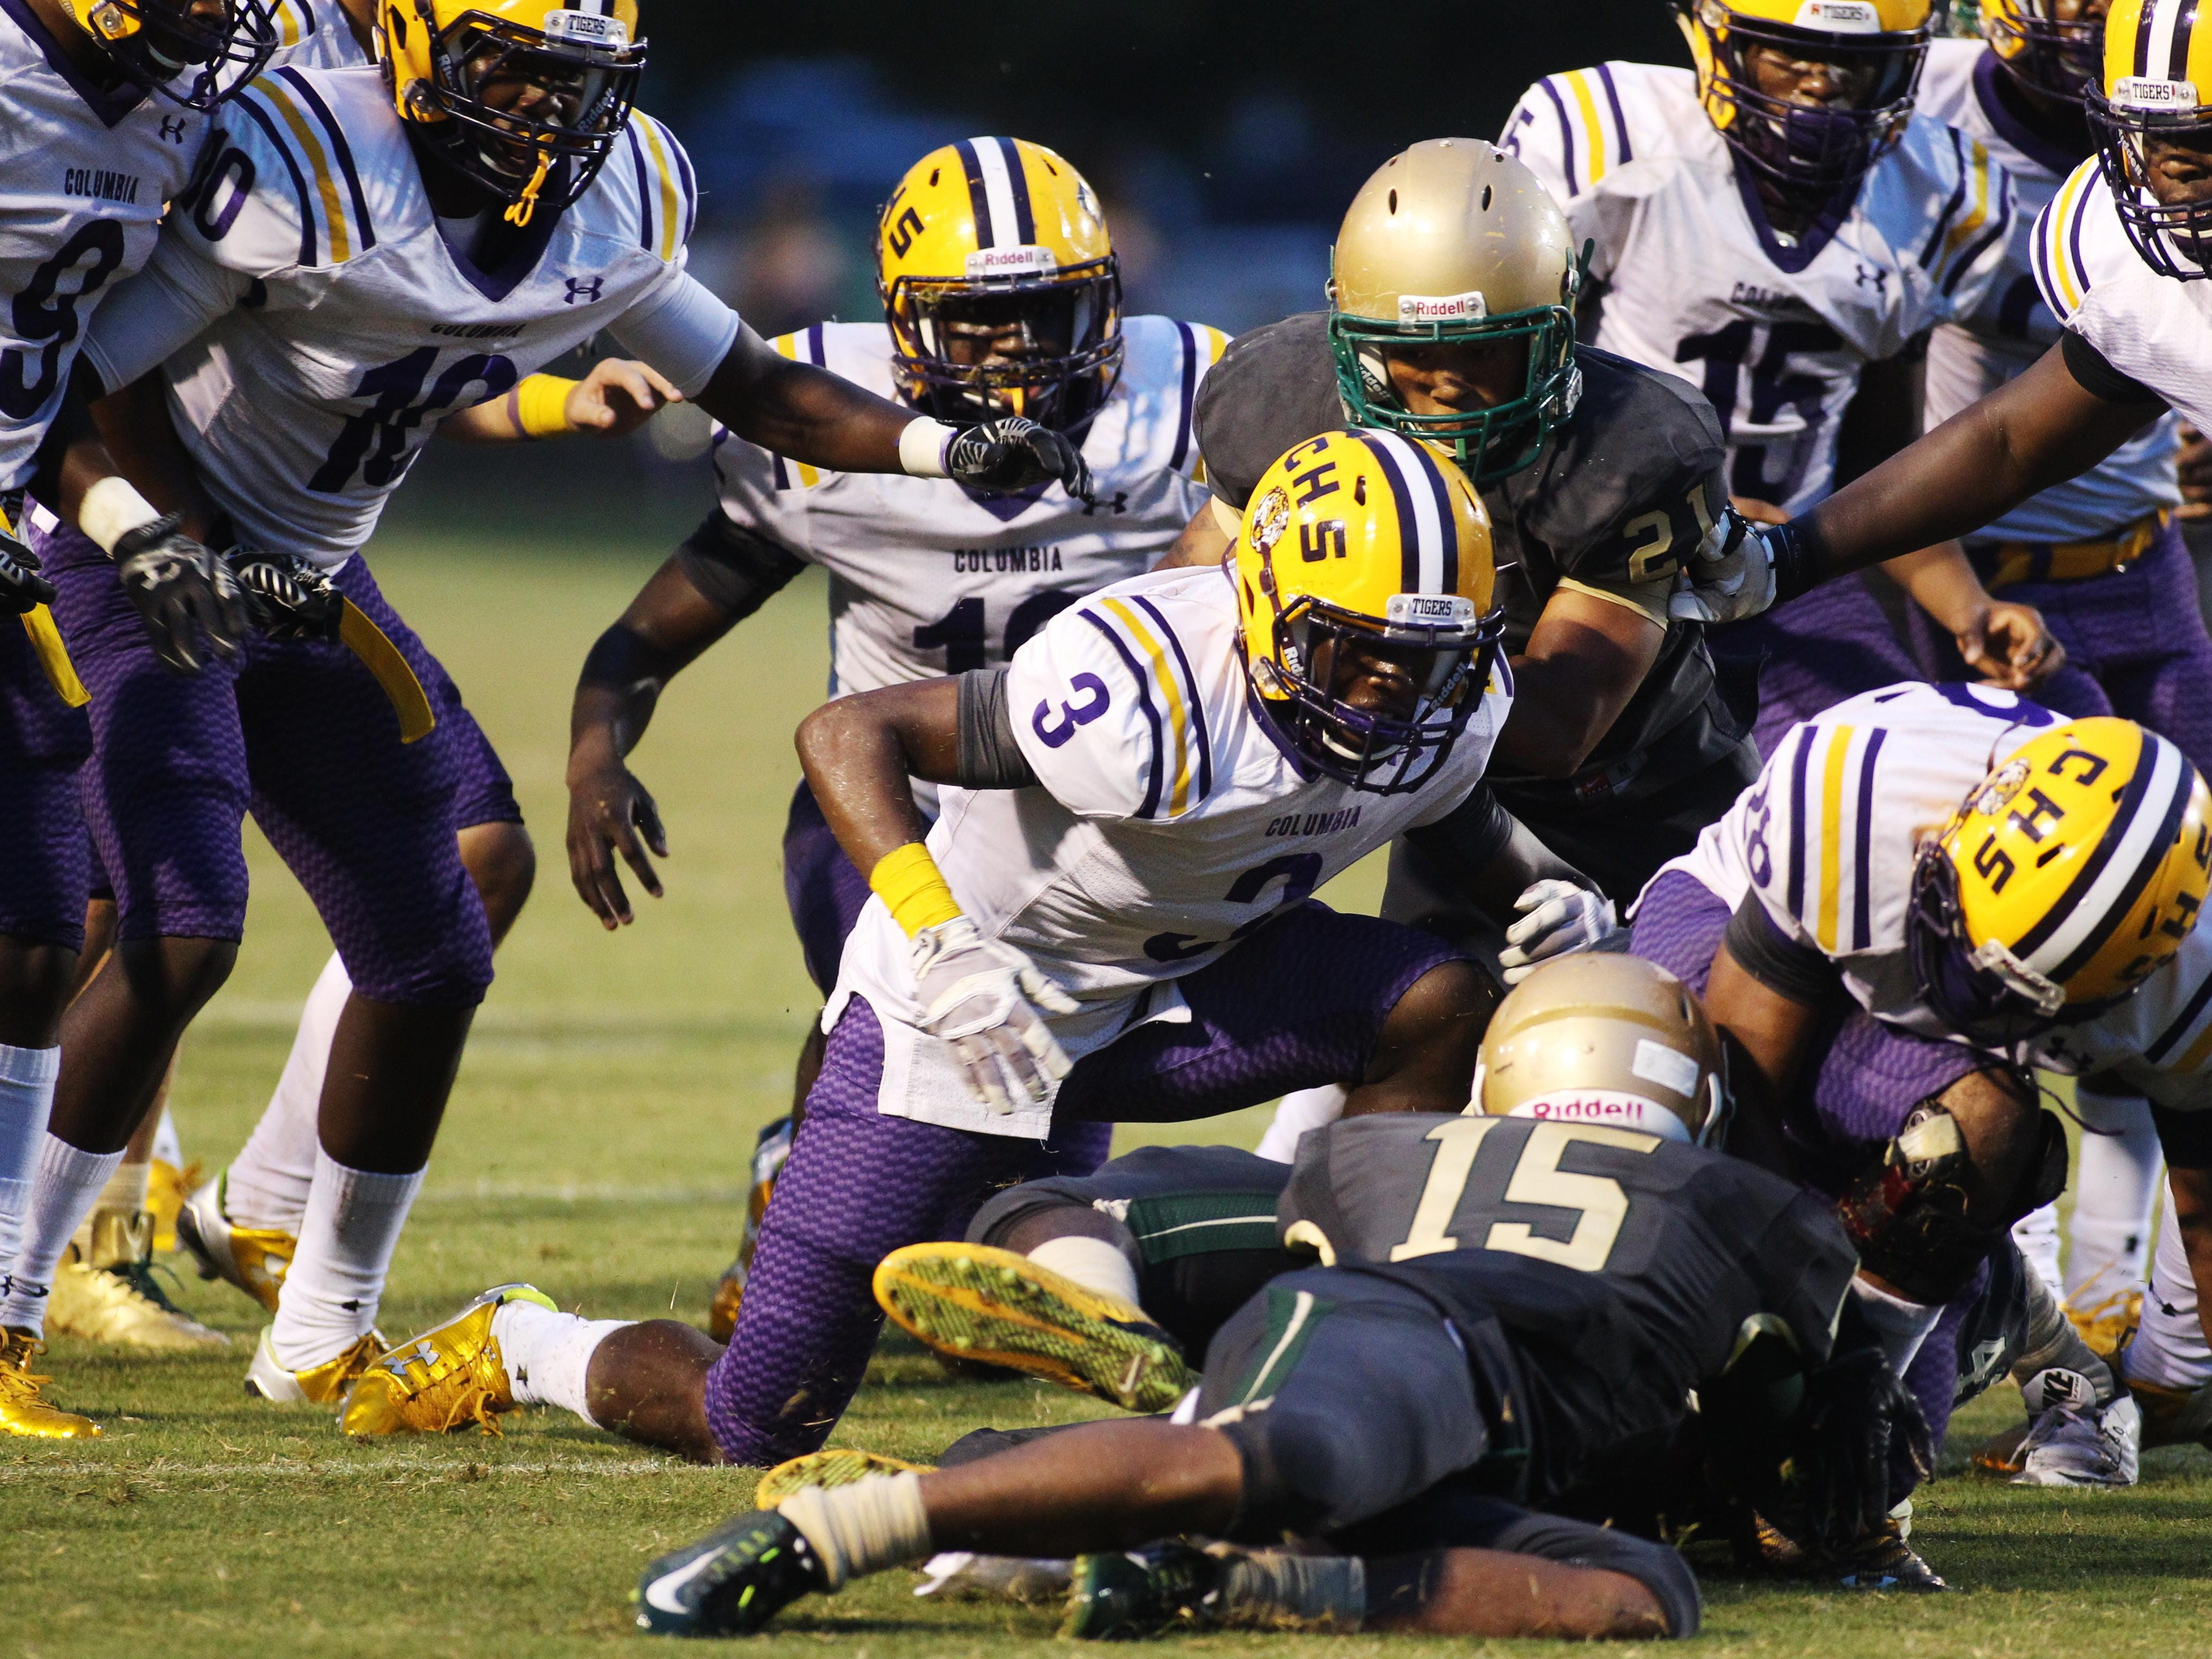 Lincoln and Lake City Columbia are familiar opponents. The two teams met for Trojans' second regular season game. Columbia won 23-14 but the both will play again Friday in a Region 1-7A semifinal playoff game.